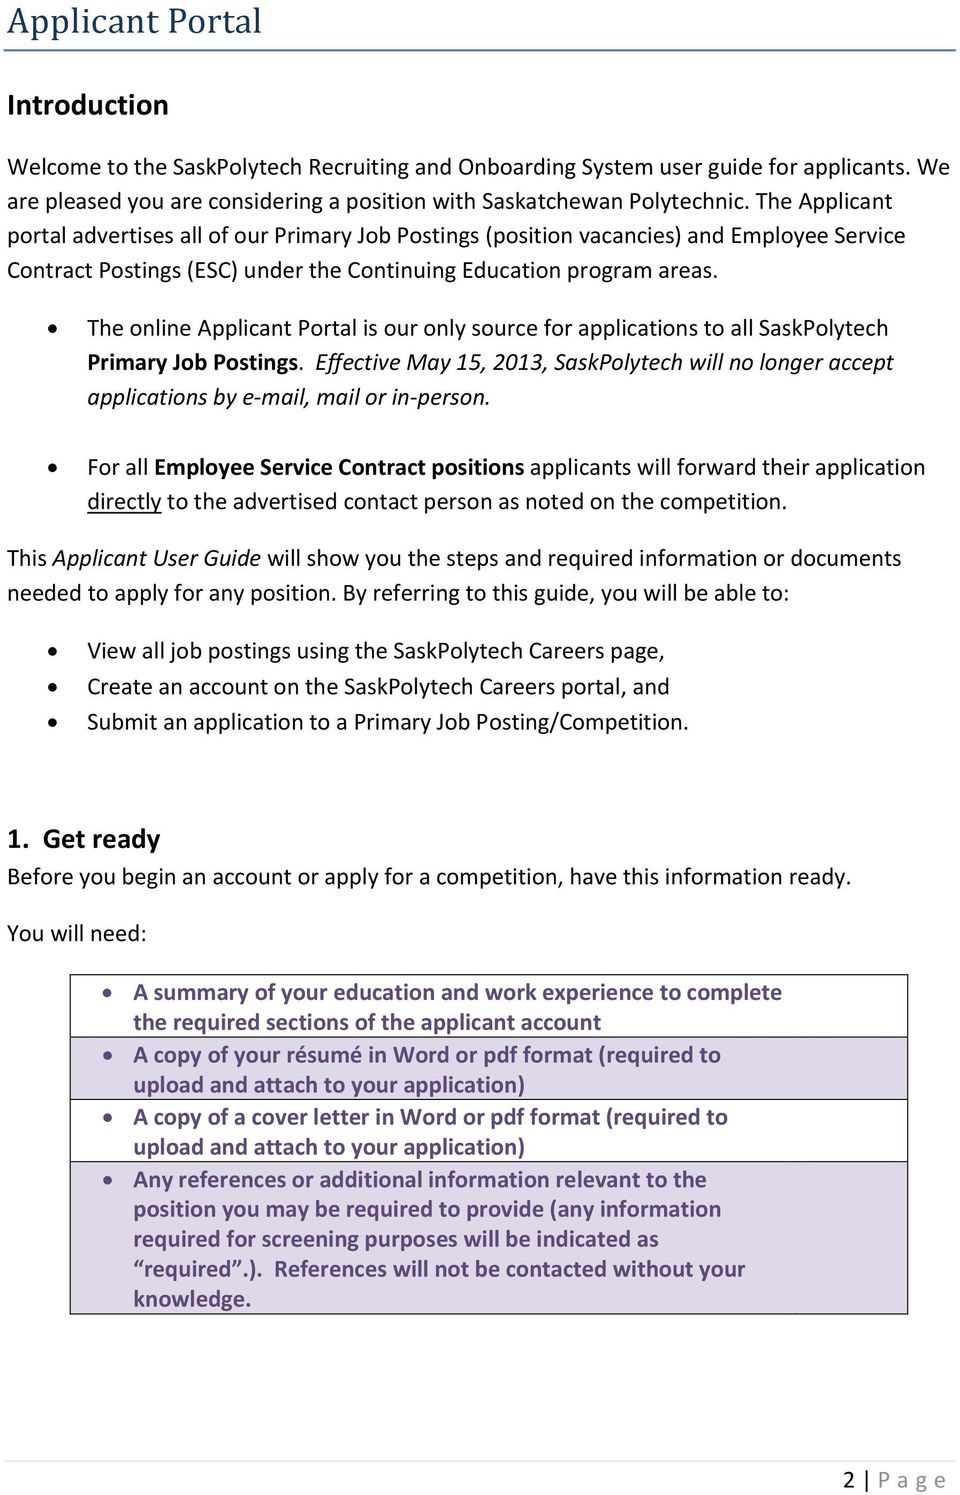 The online Applicant Portal is our only source for applications to all SaskPolytech Primary Job Postings.